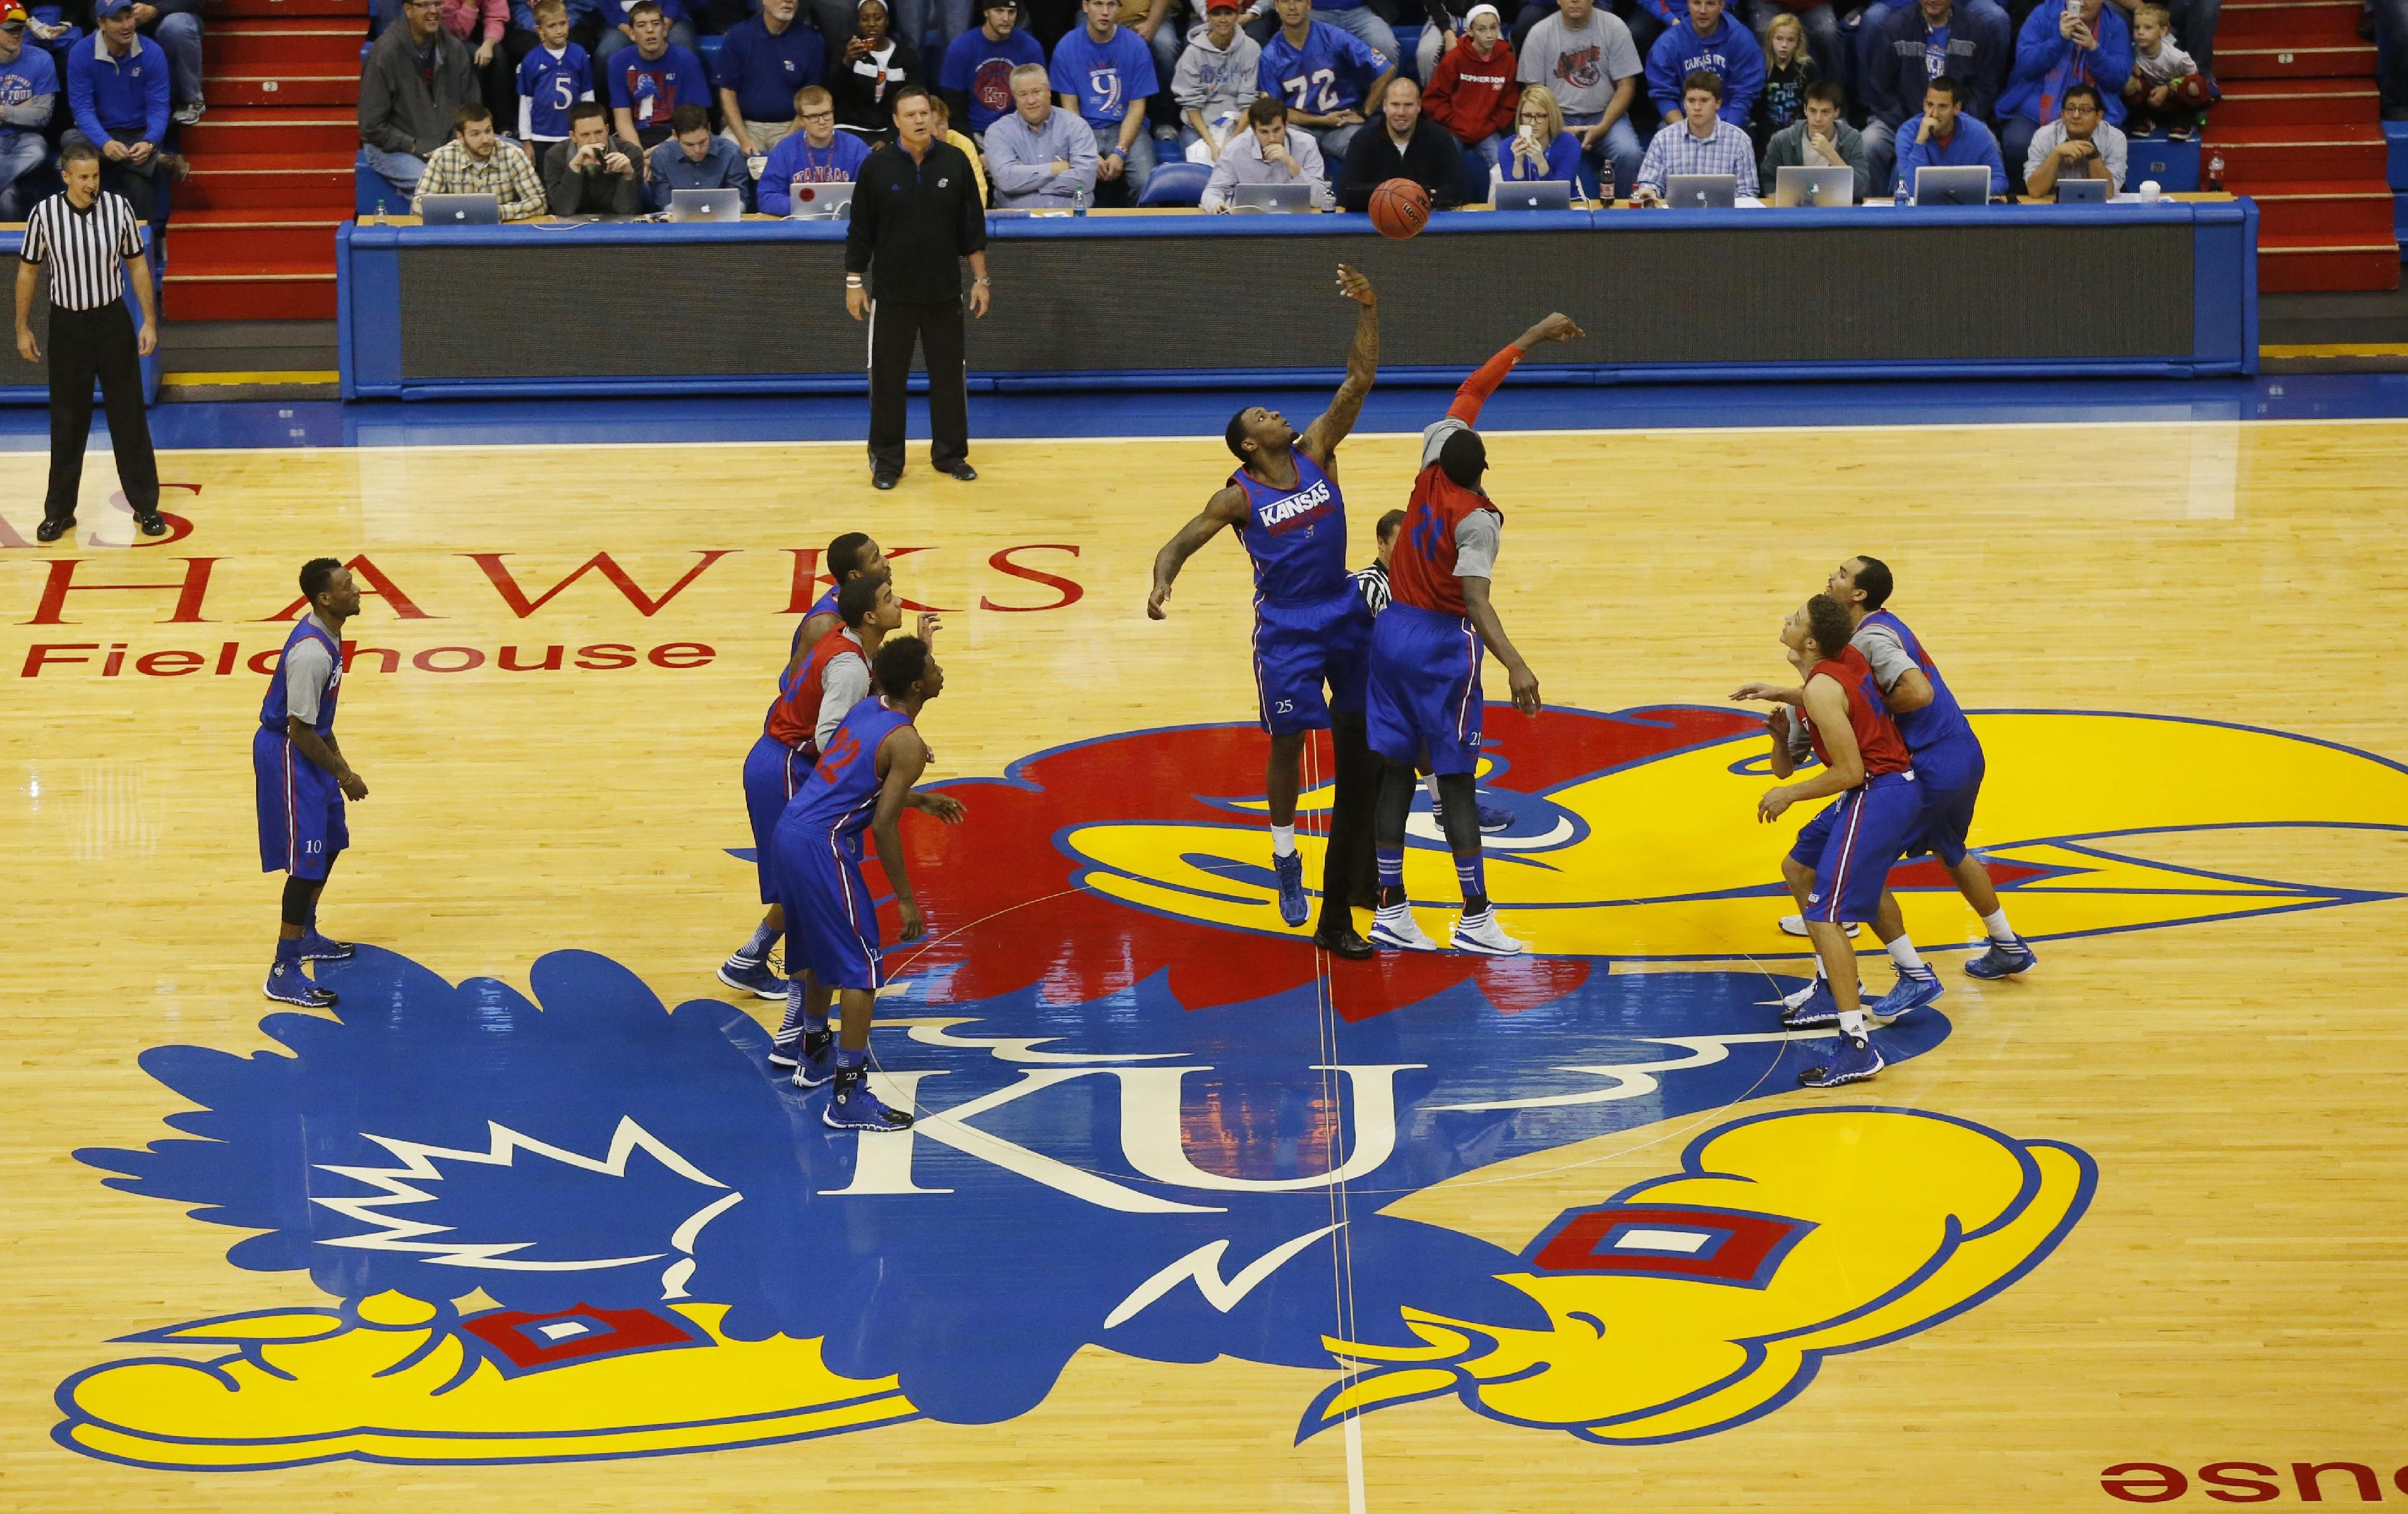 Kansas White and Blue teams tipoff for an NCAA college basketball scrimmage in Lawrence, Kan., Saturday, Oct. 19, 2013